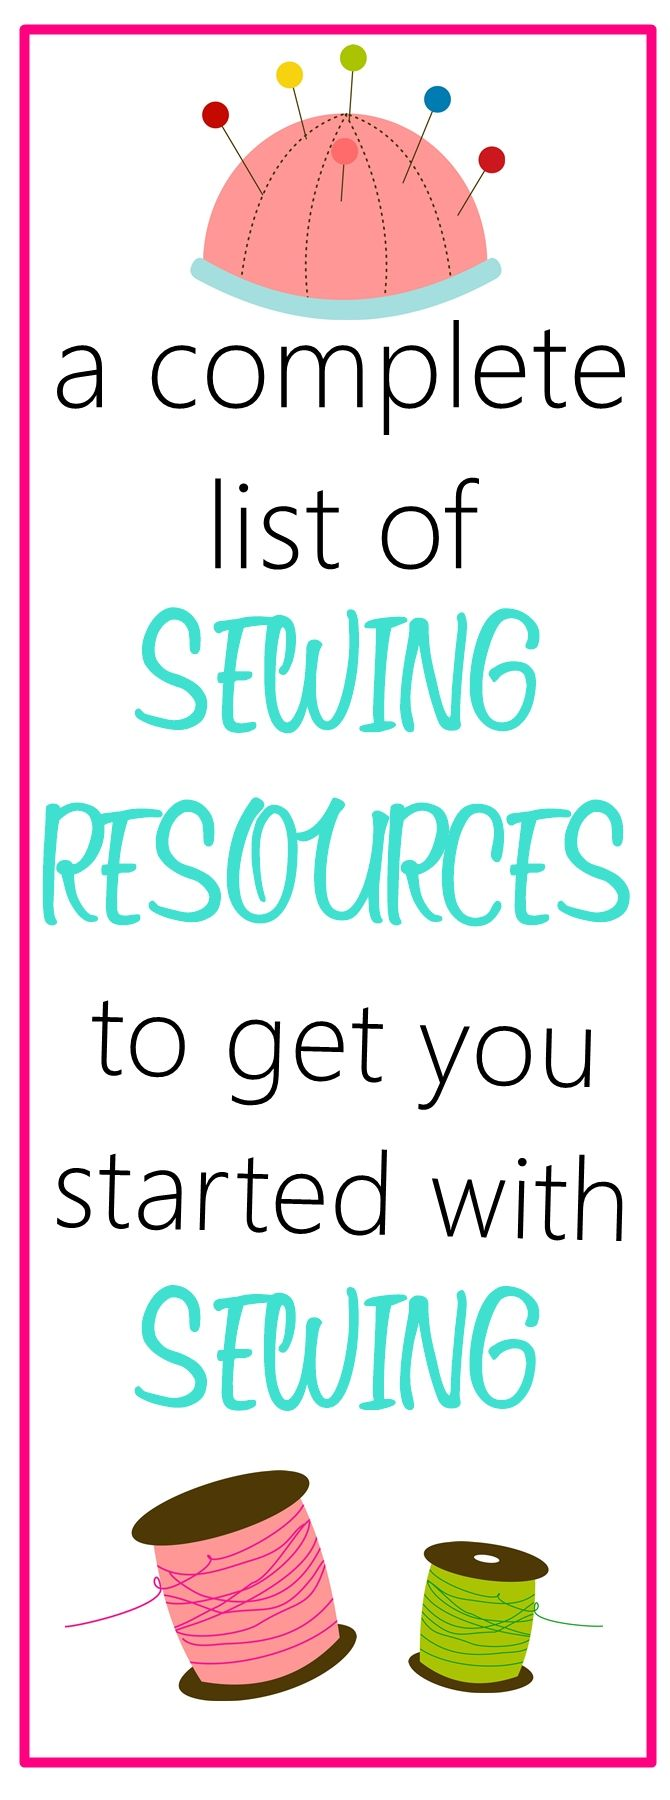 how to take up trousers with a sewing machine